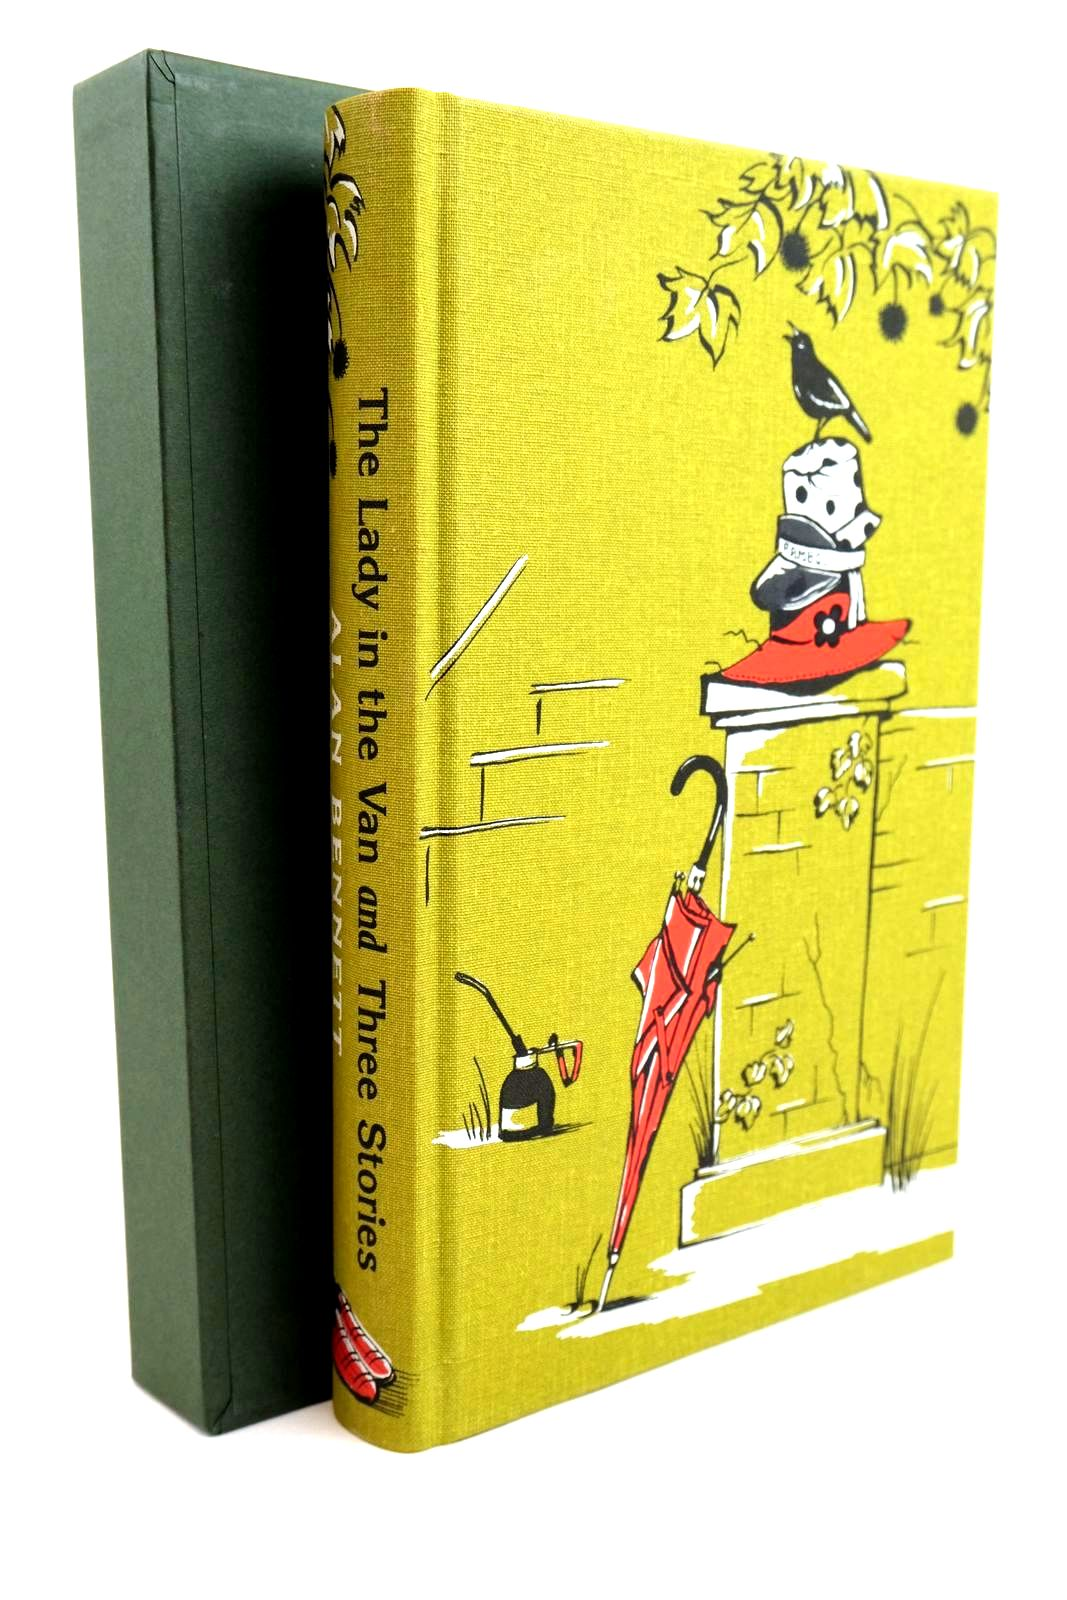 Photo of THE LADY IN THE VAN AND THREE STORIES written by Bennett, Alan illustrated by Smithson, Helen published by Folio Society (STOCK CODE: 1320304)  for sale by Stella & Rose's Books